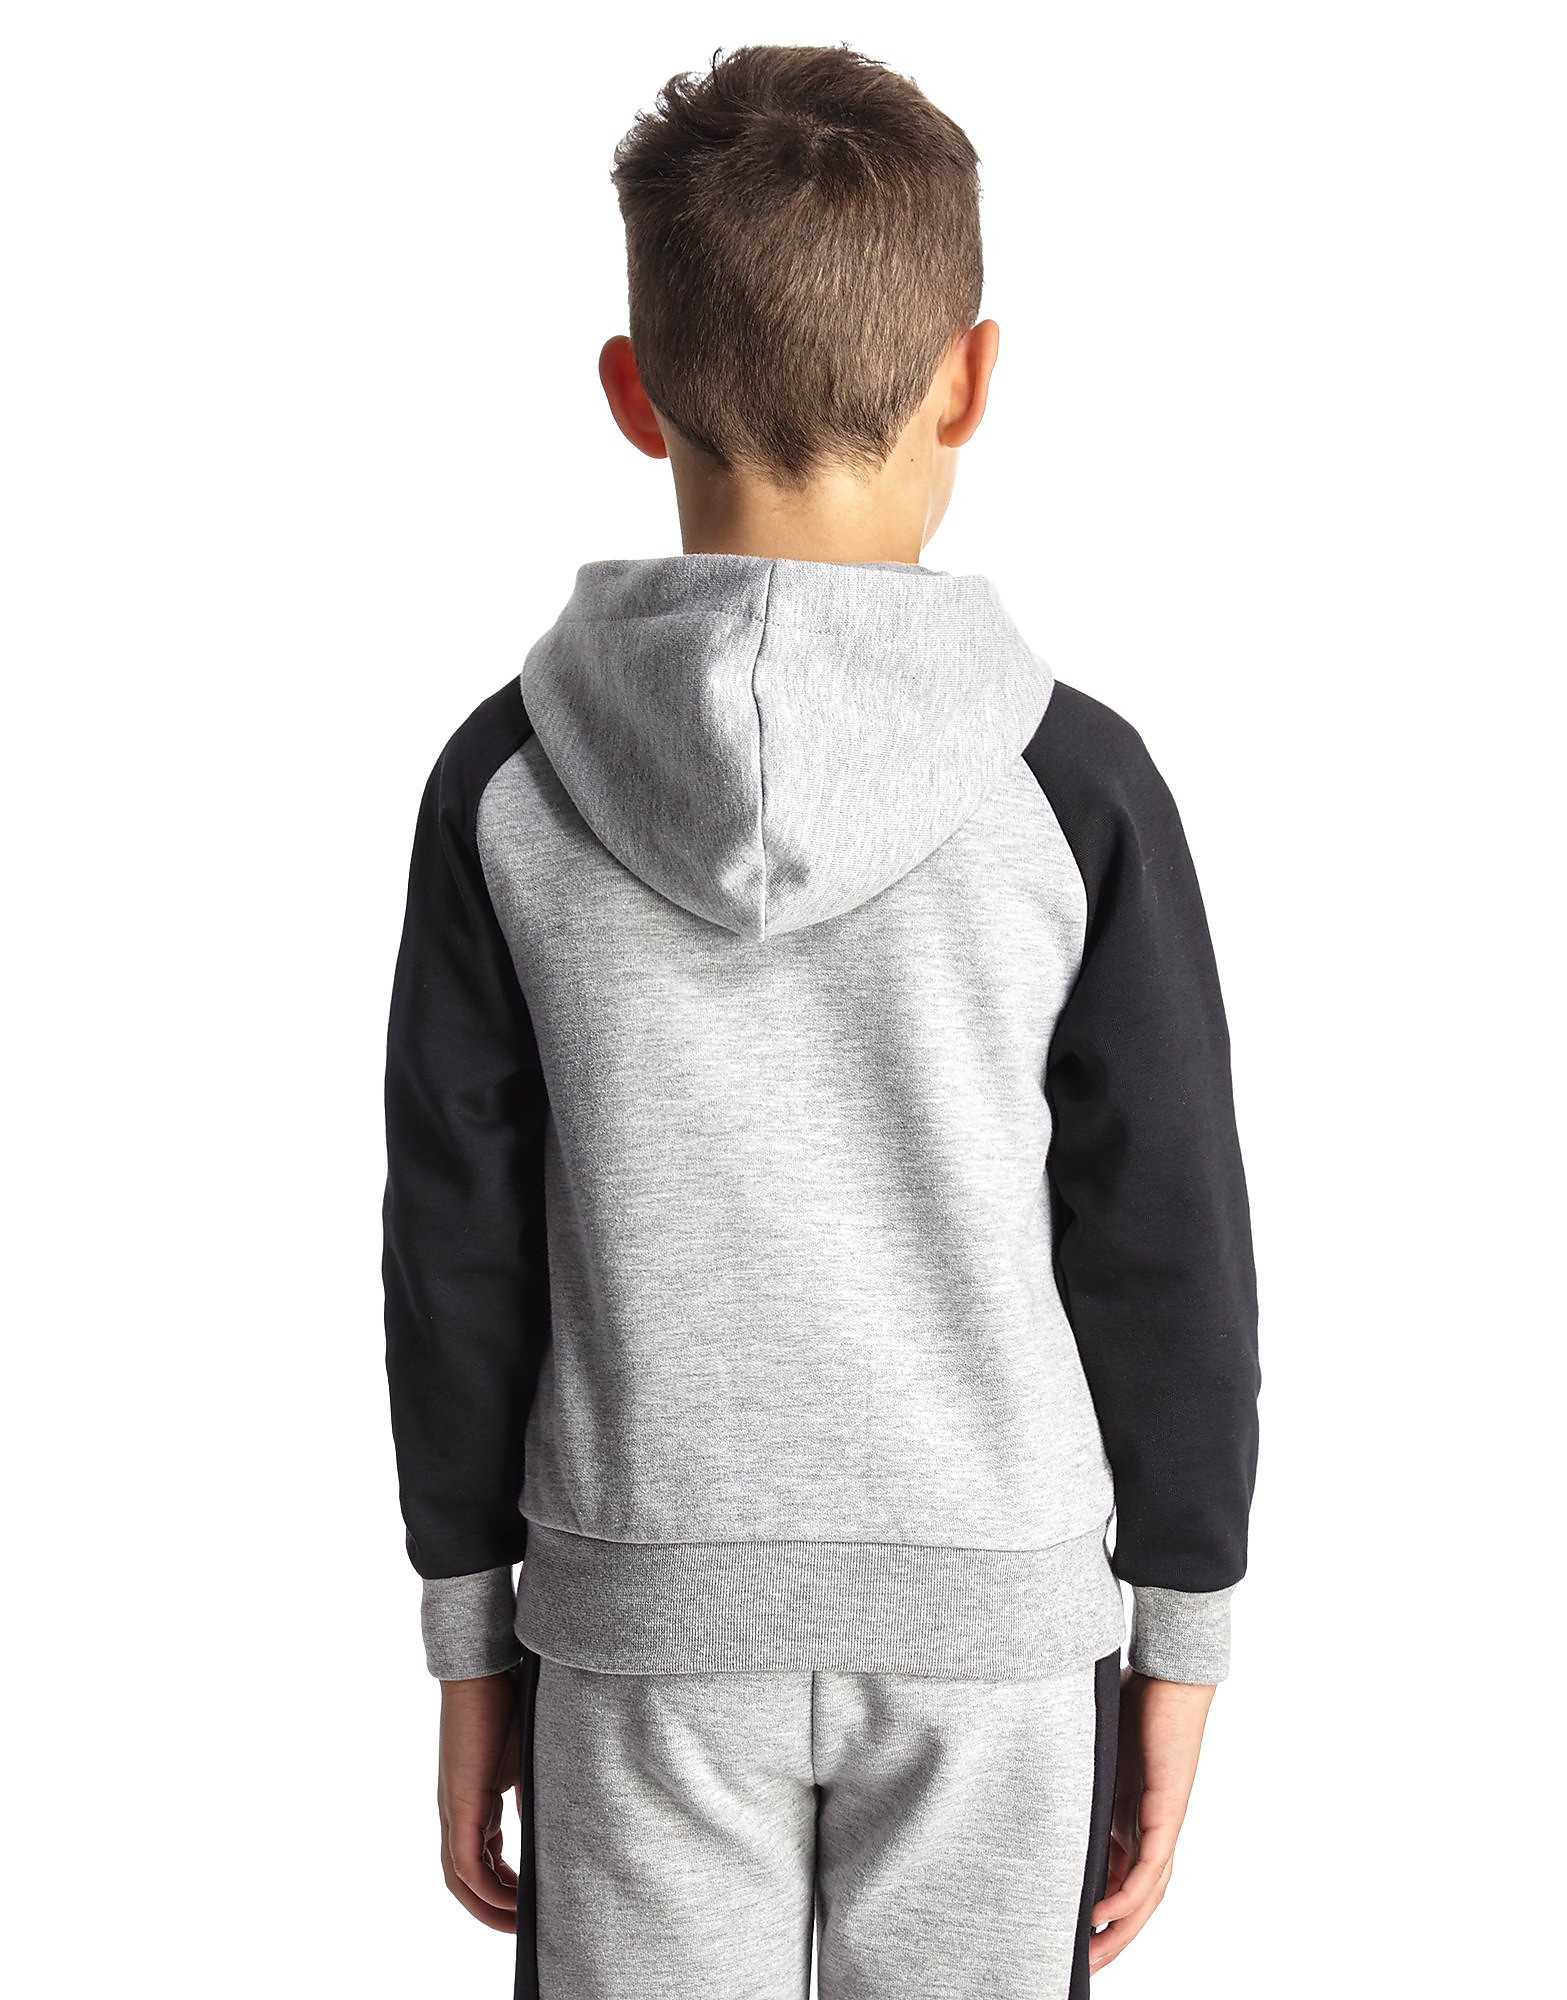 Duffer of St George Bond Zip Up Hoody Children